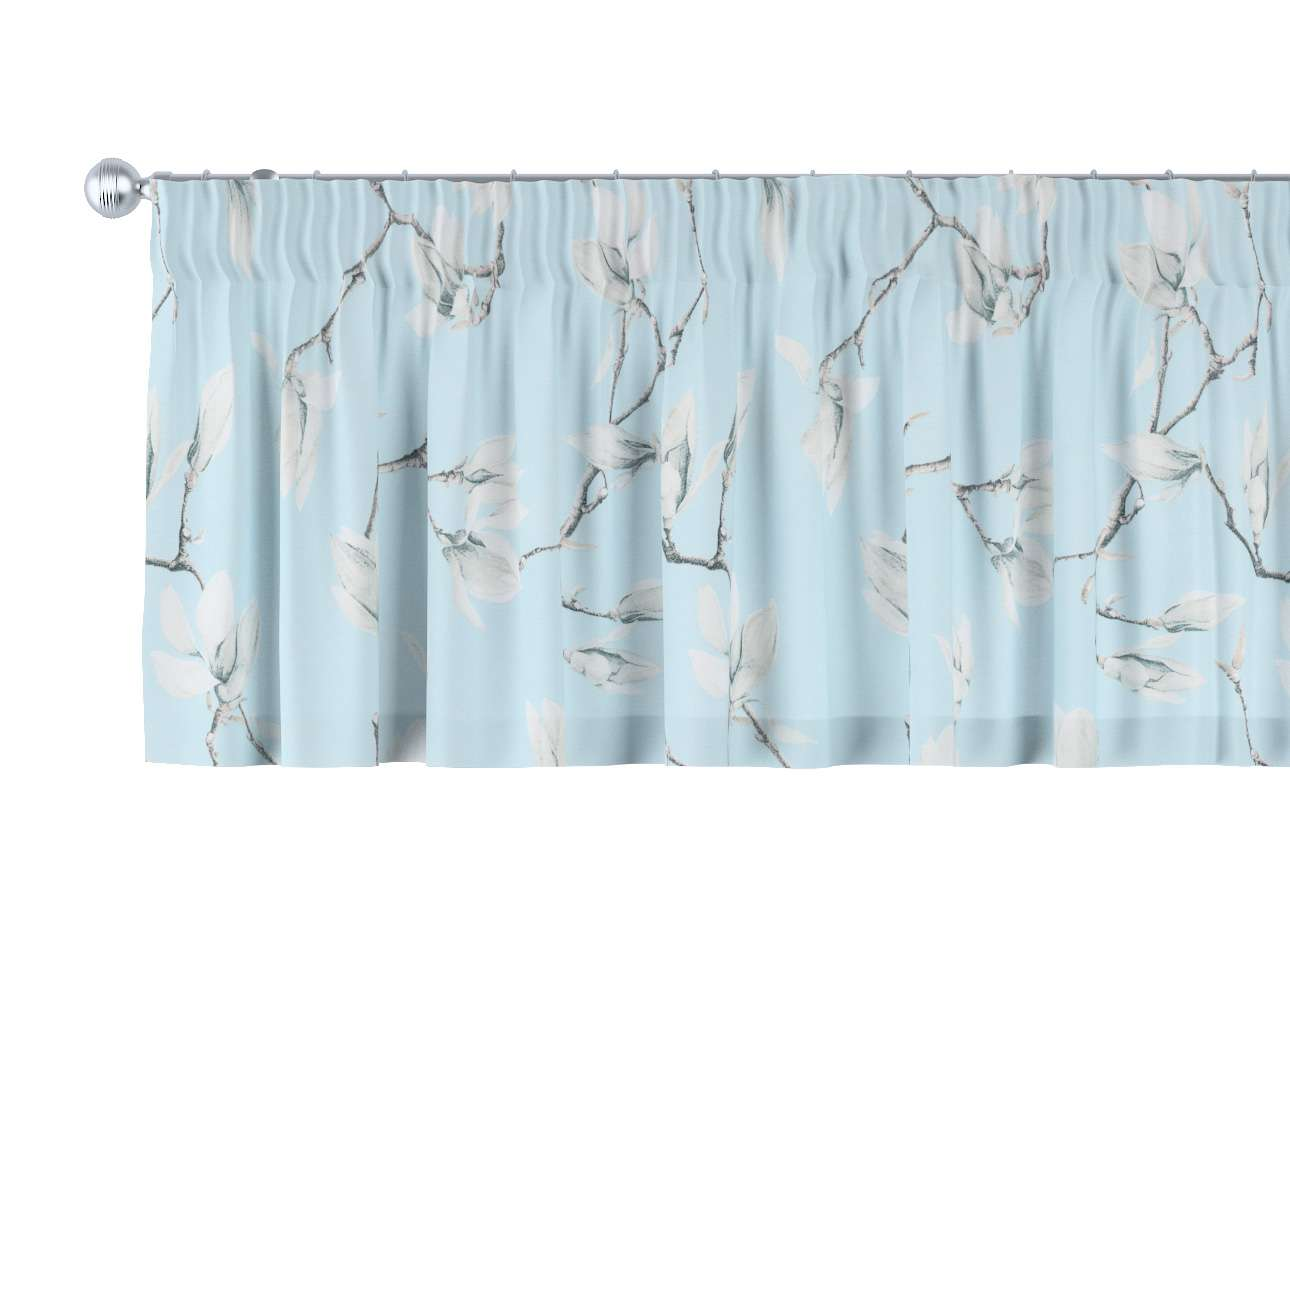 Pencil pleat pelmet in collection Flowers, fabric: 311-14